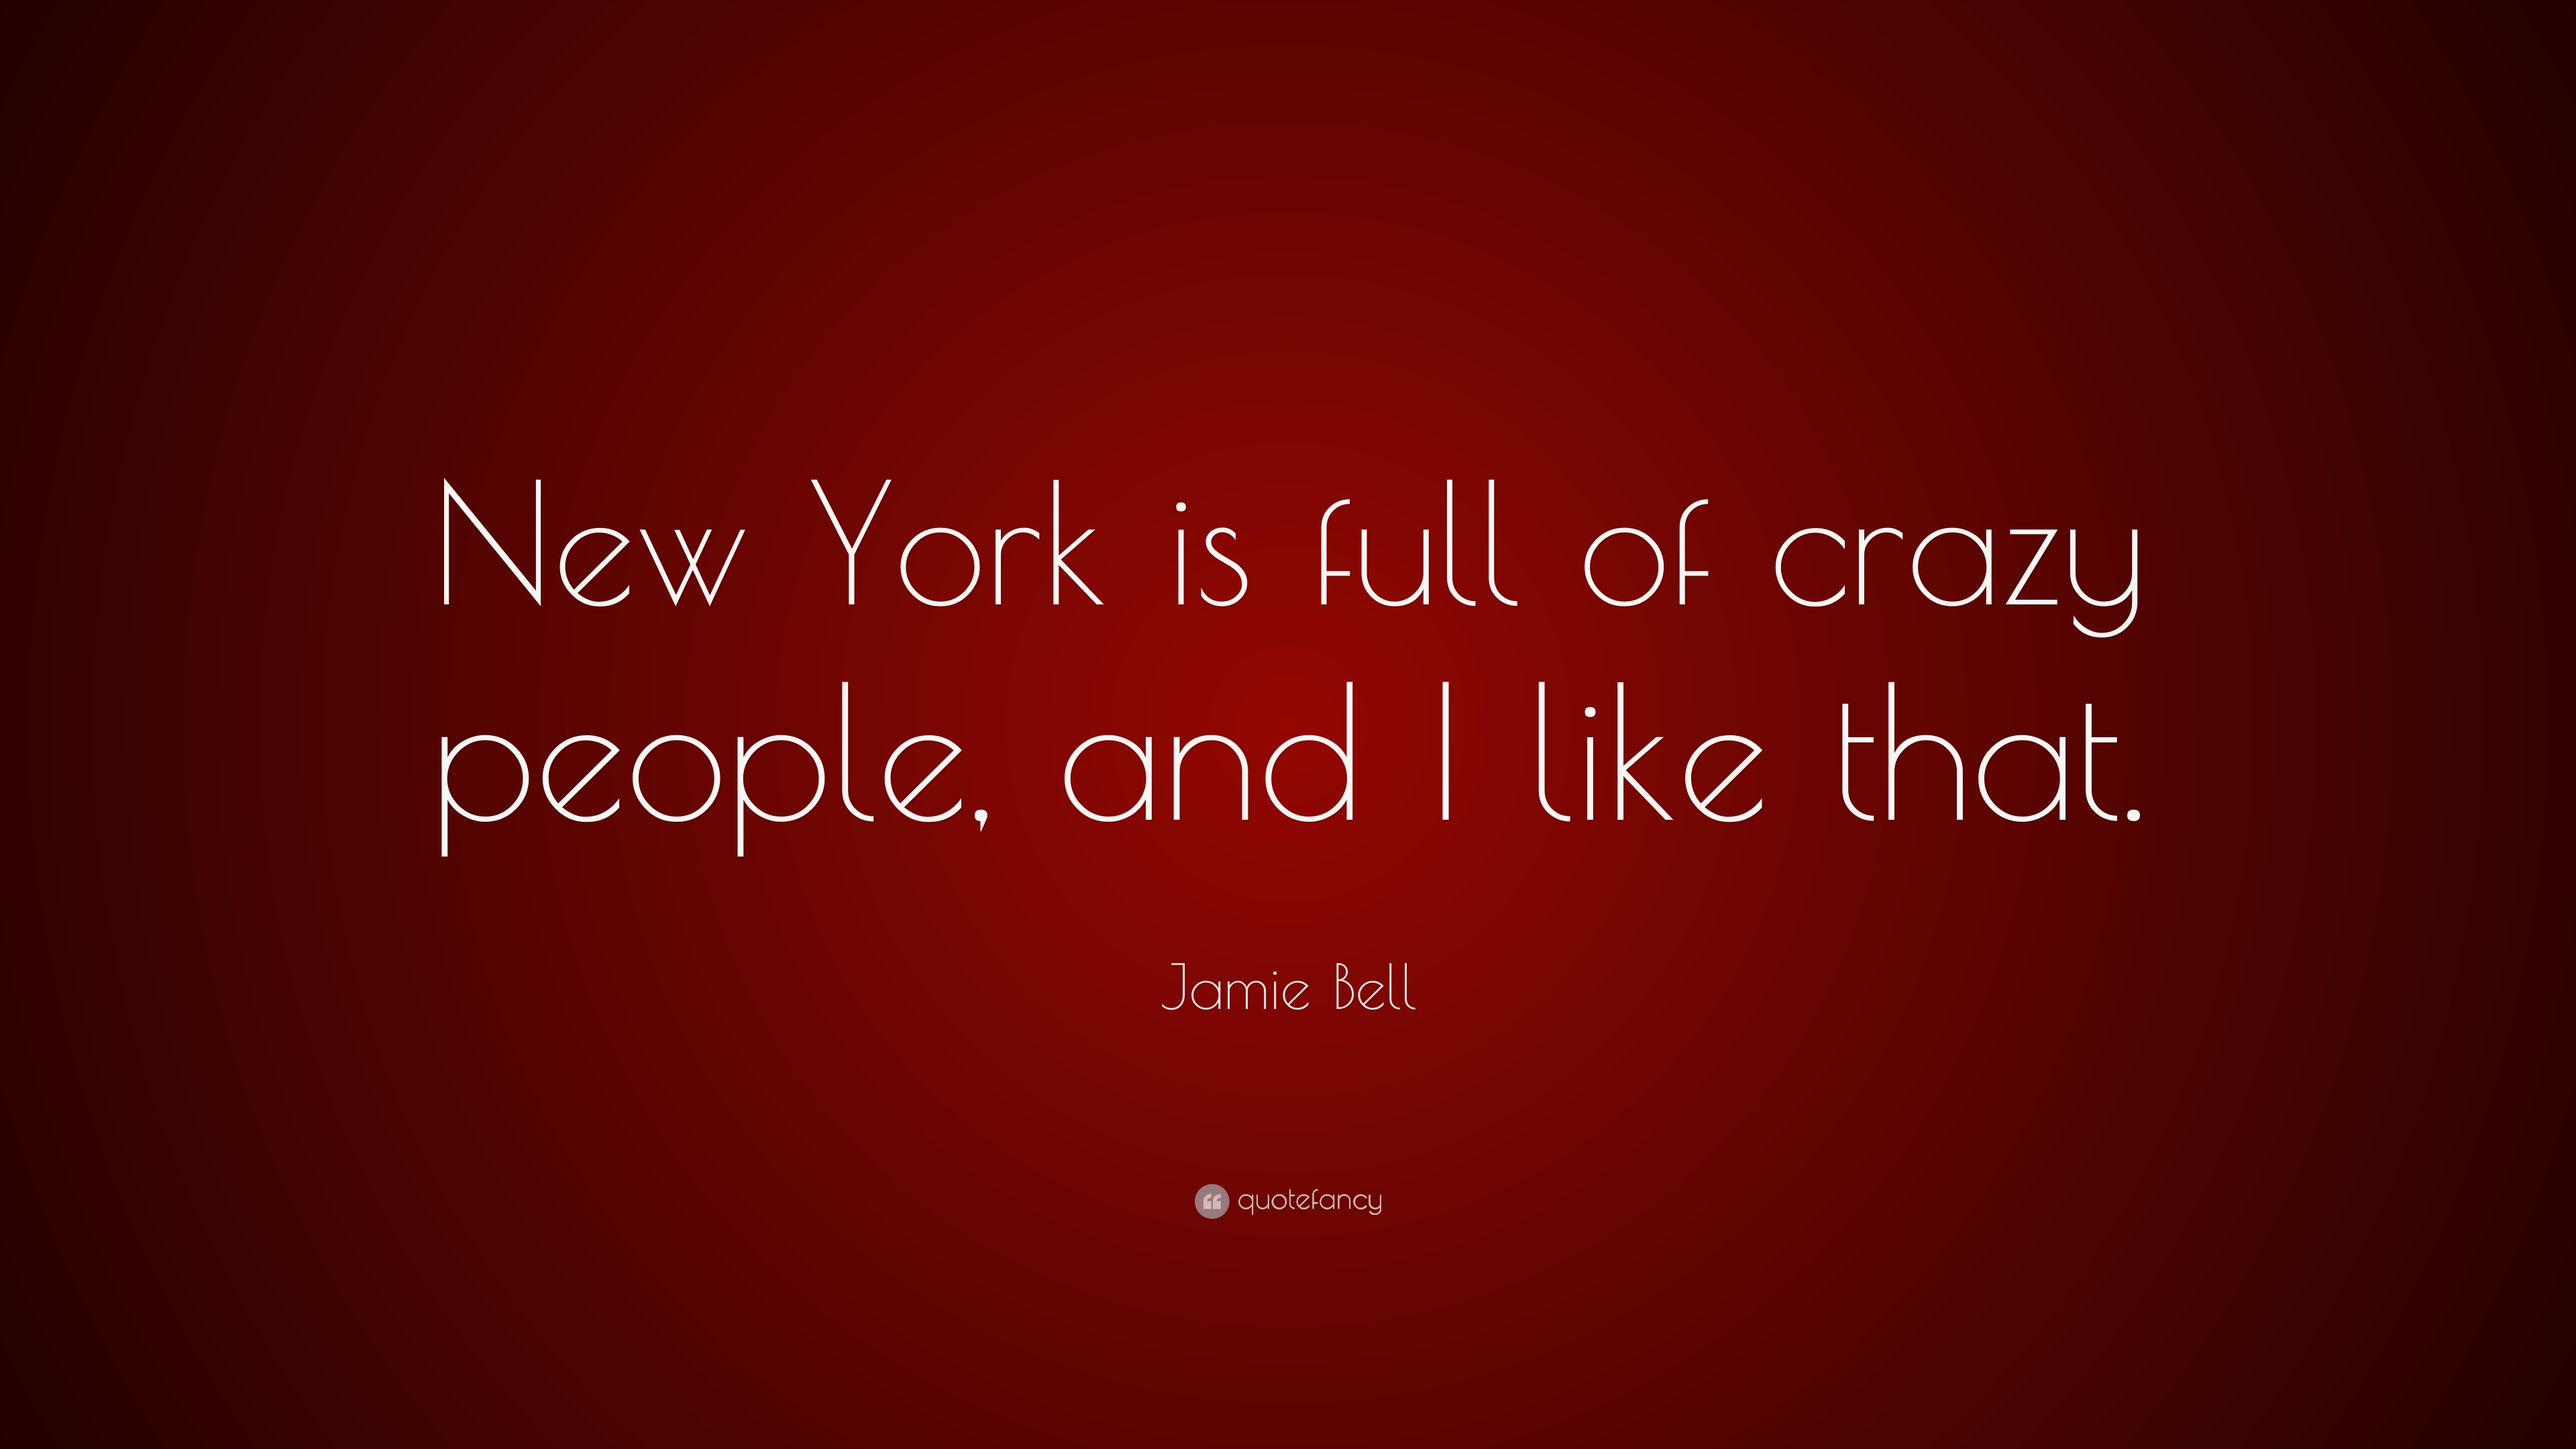 Enthralling S Crazy People Quotes Crazy Pics Sayings Crazy Jamie Bell York Is Full I Like Jamie Bell York Is Full I Like That Crazy People Quotes bark post Crazy People Quotes